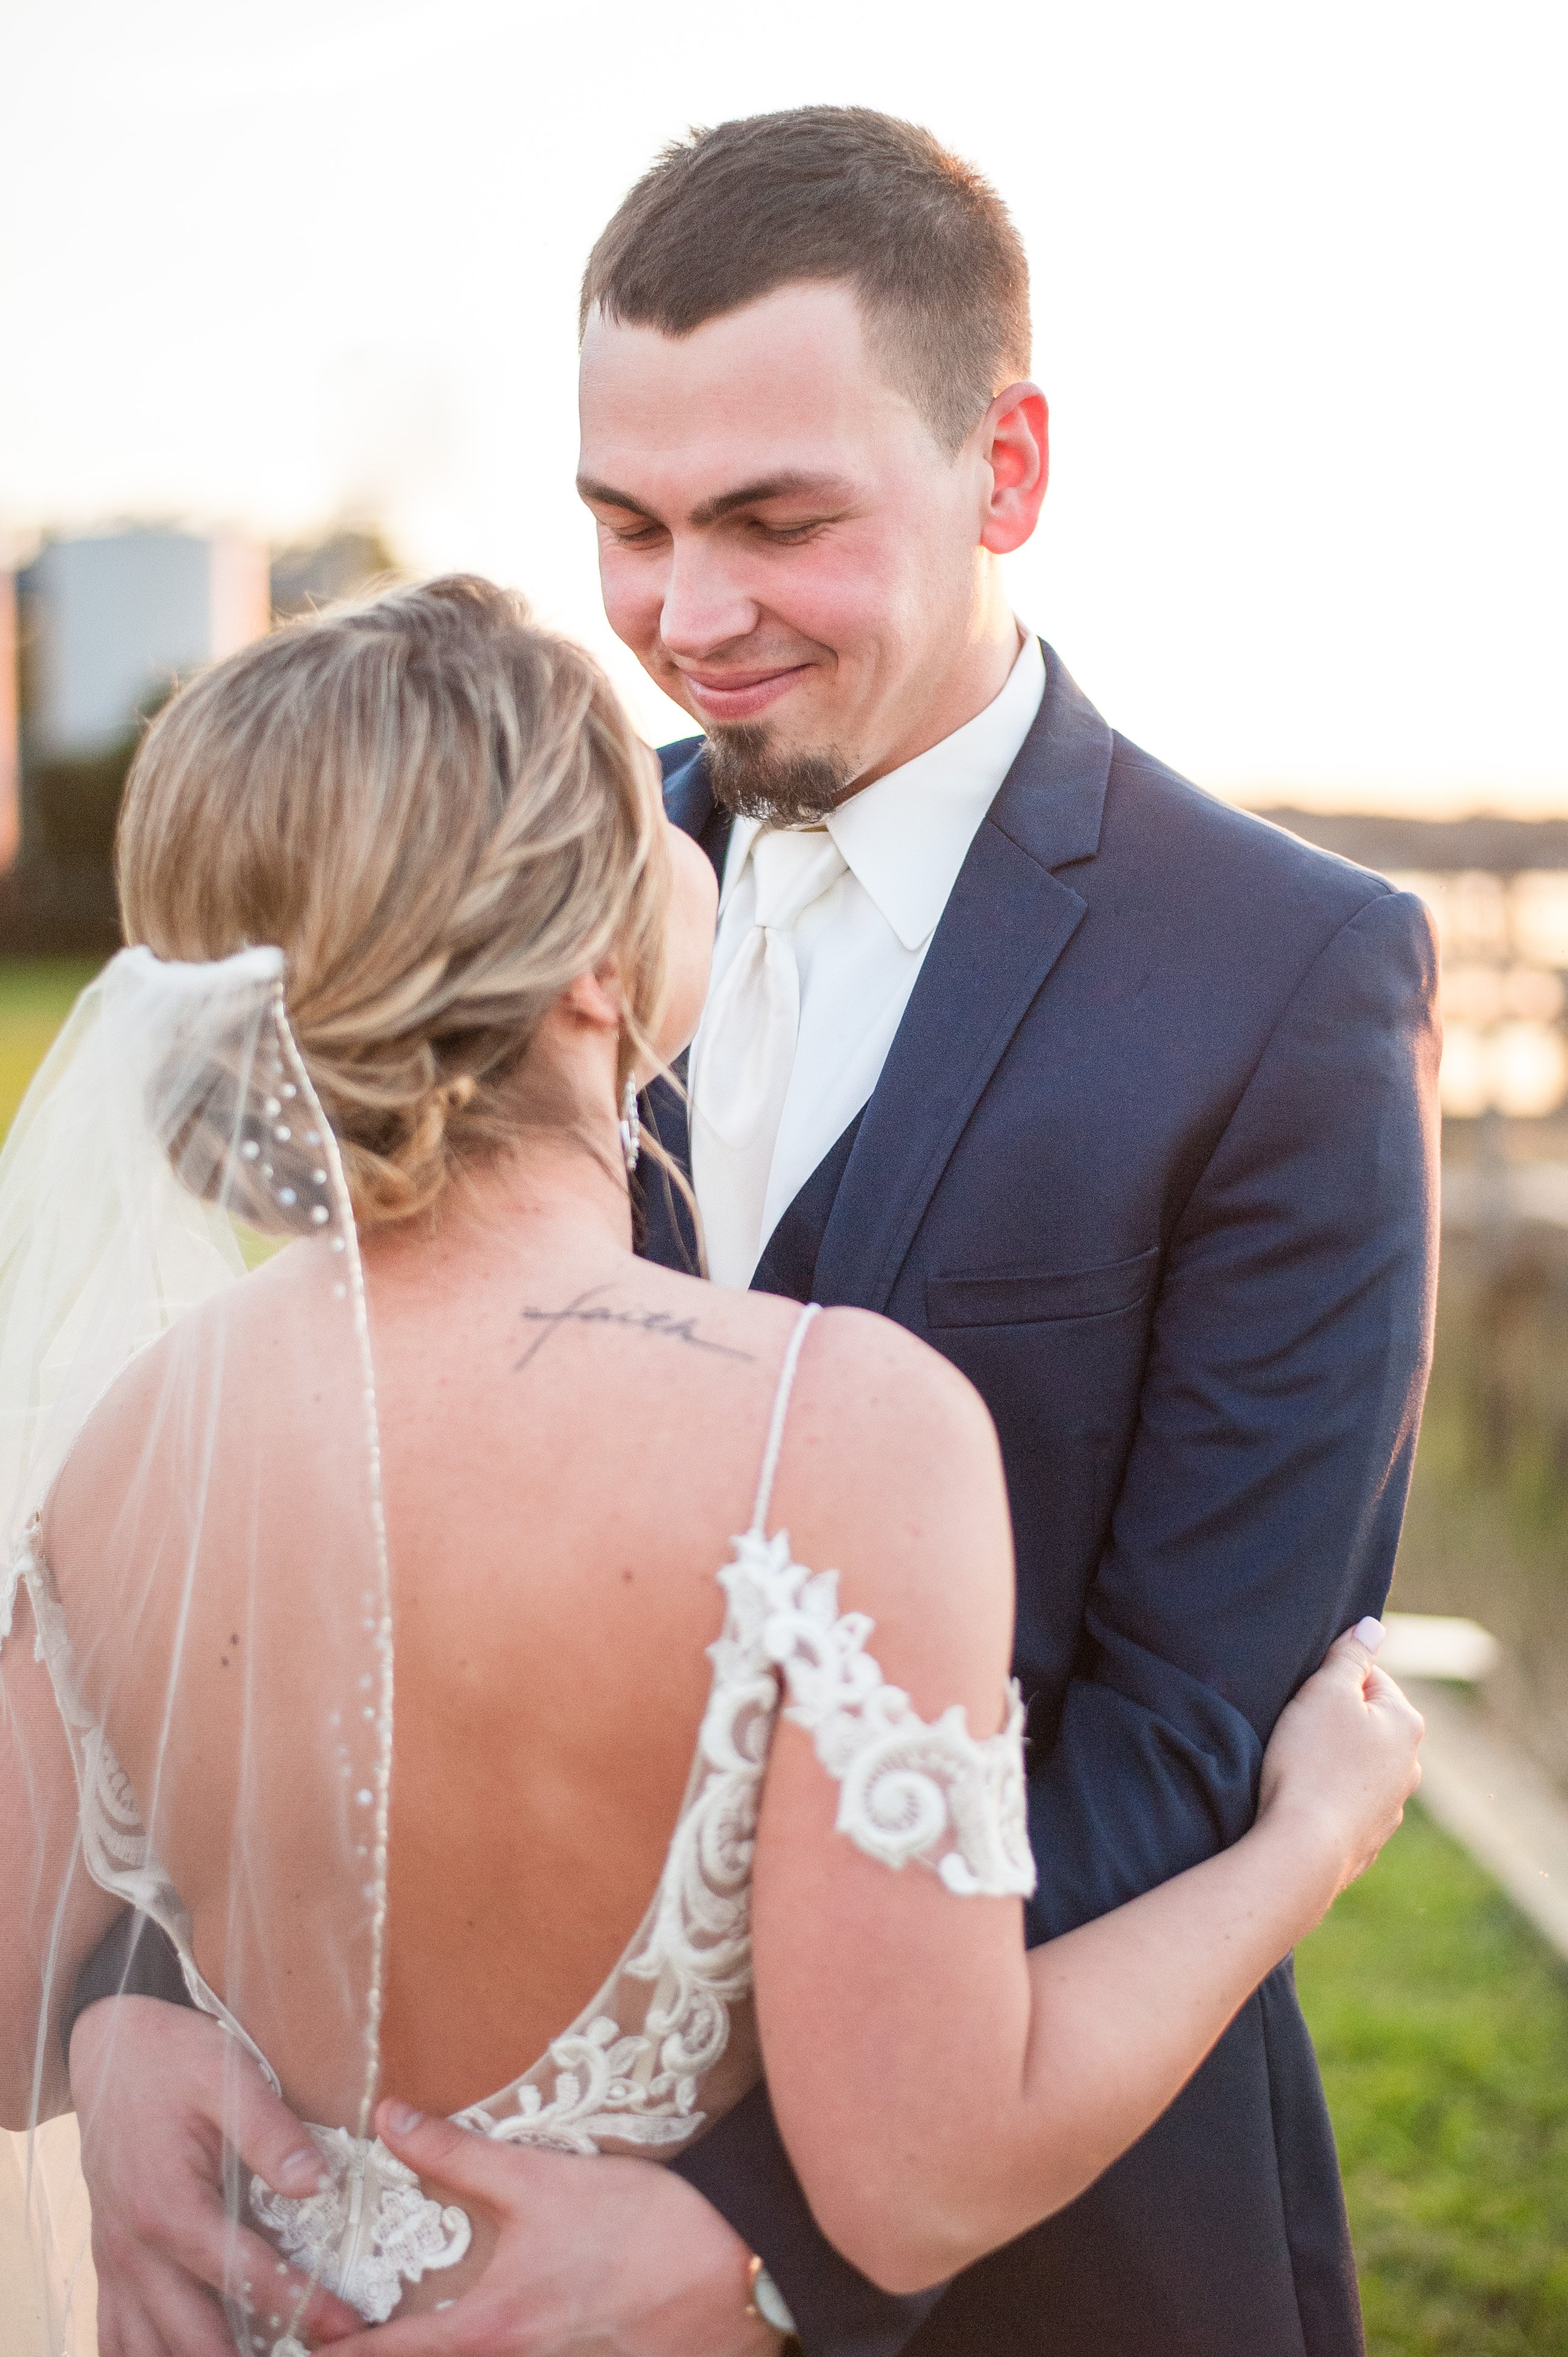 Bride and groom portrait by Charleston wedding photographer, Cameron Thomas